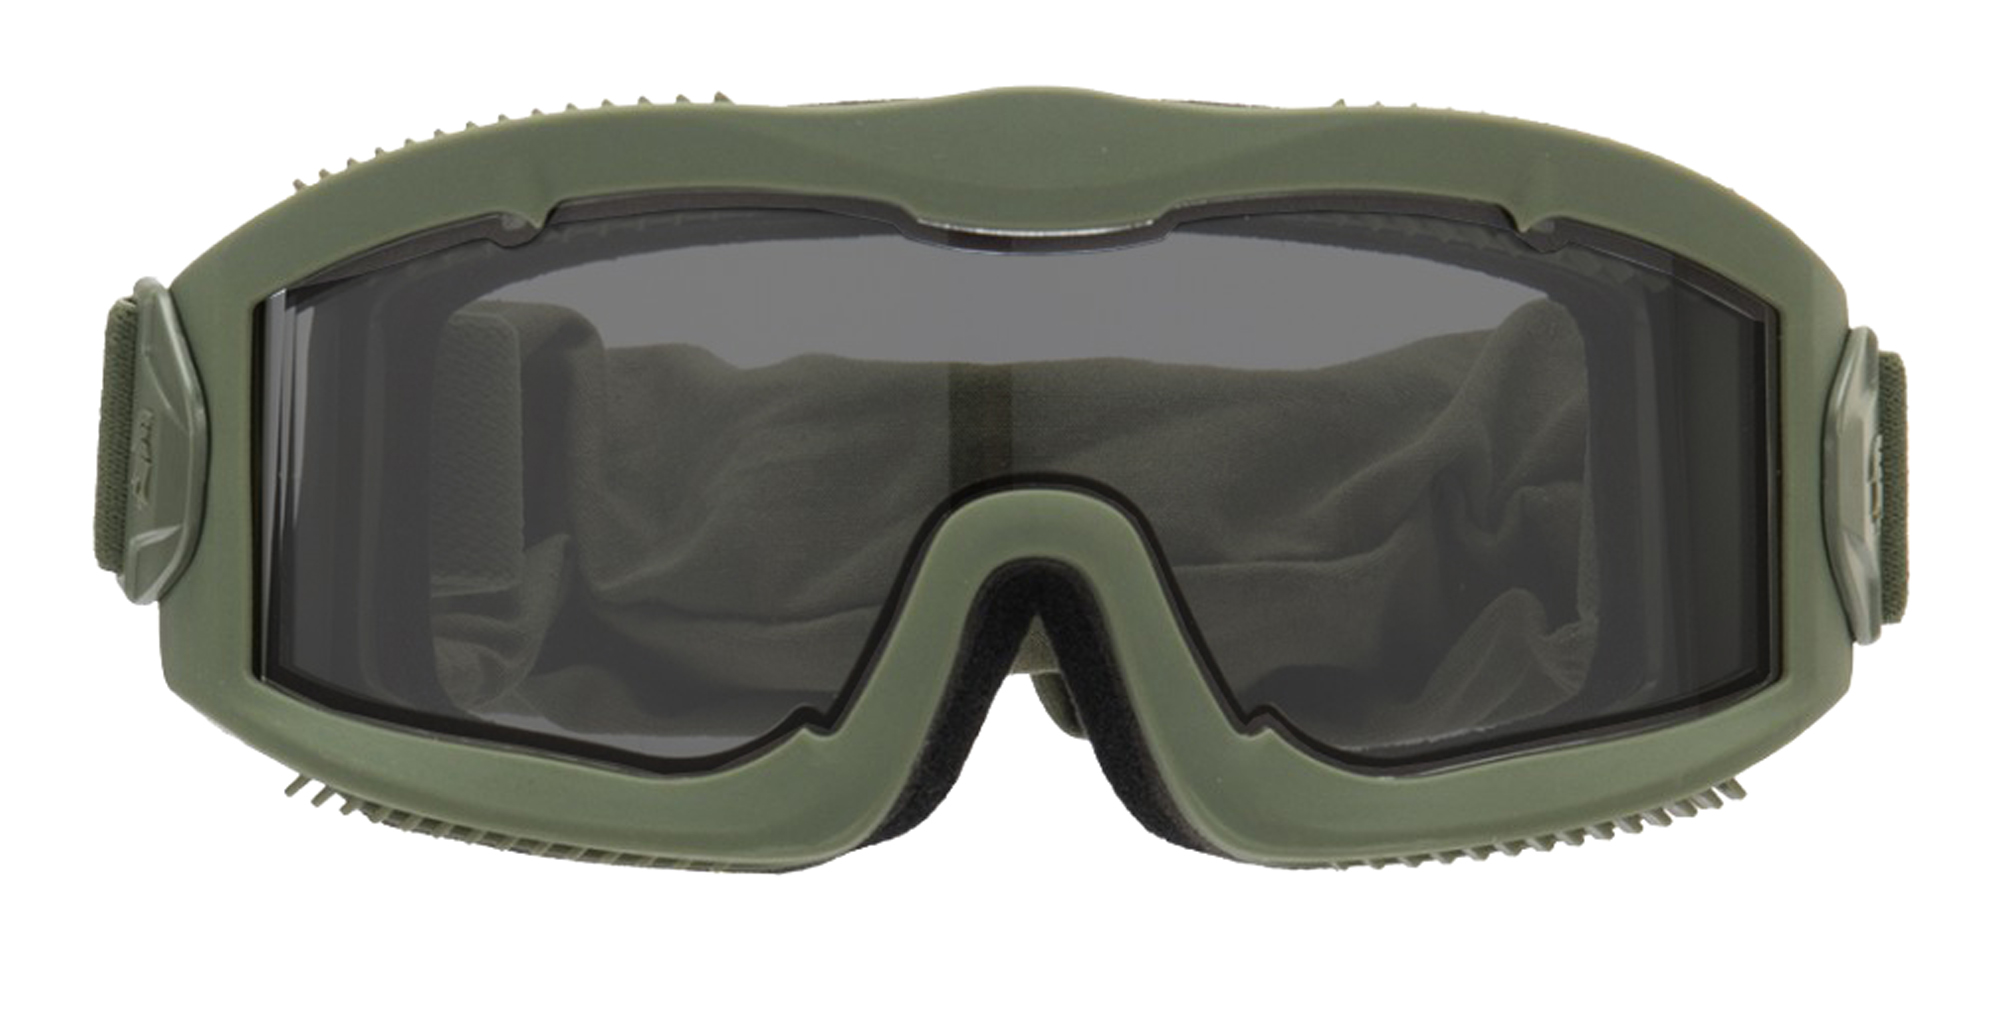 MAS204-1 Airsoft Mask AERO Series Thermal OD smoke - MAS204